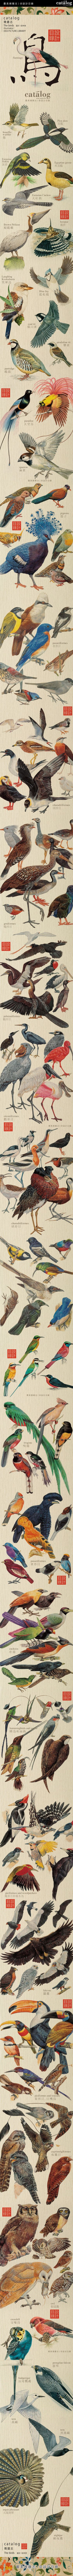 catalog of birds